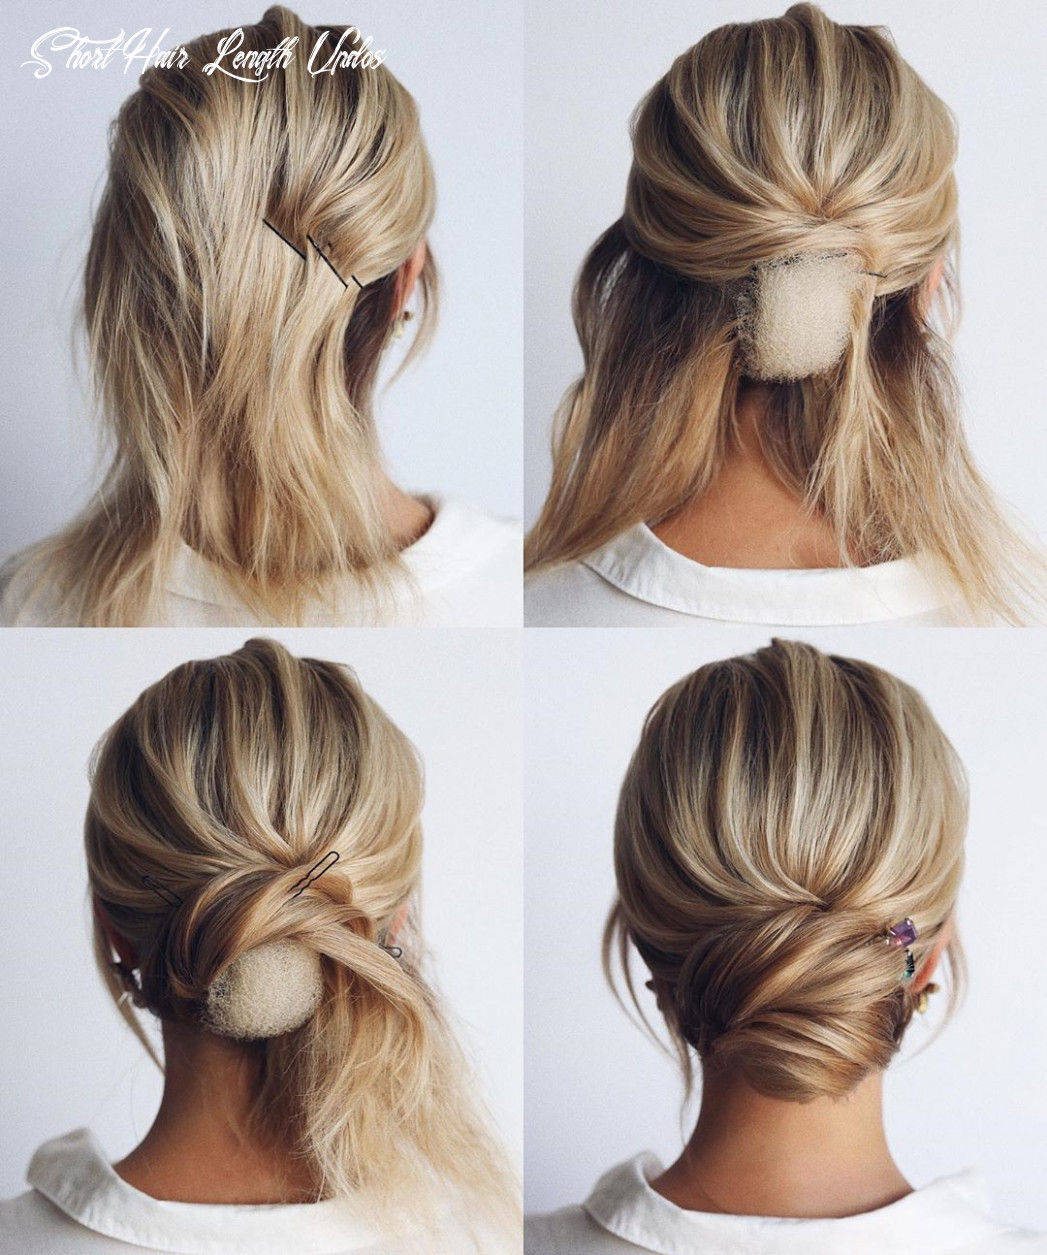 12 easy and cute hair tutorials for any occasion   short wedding